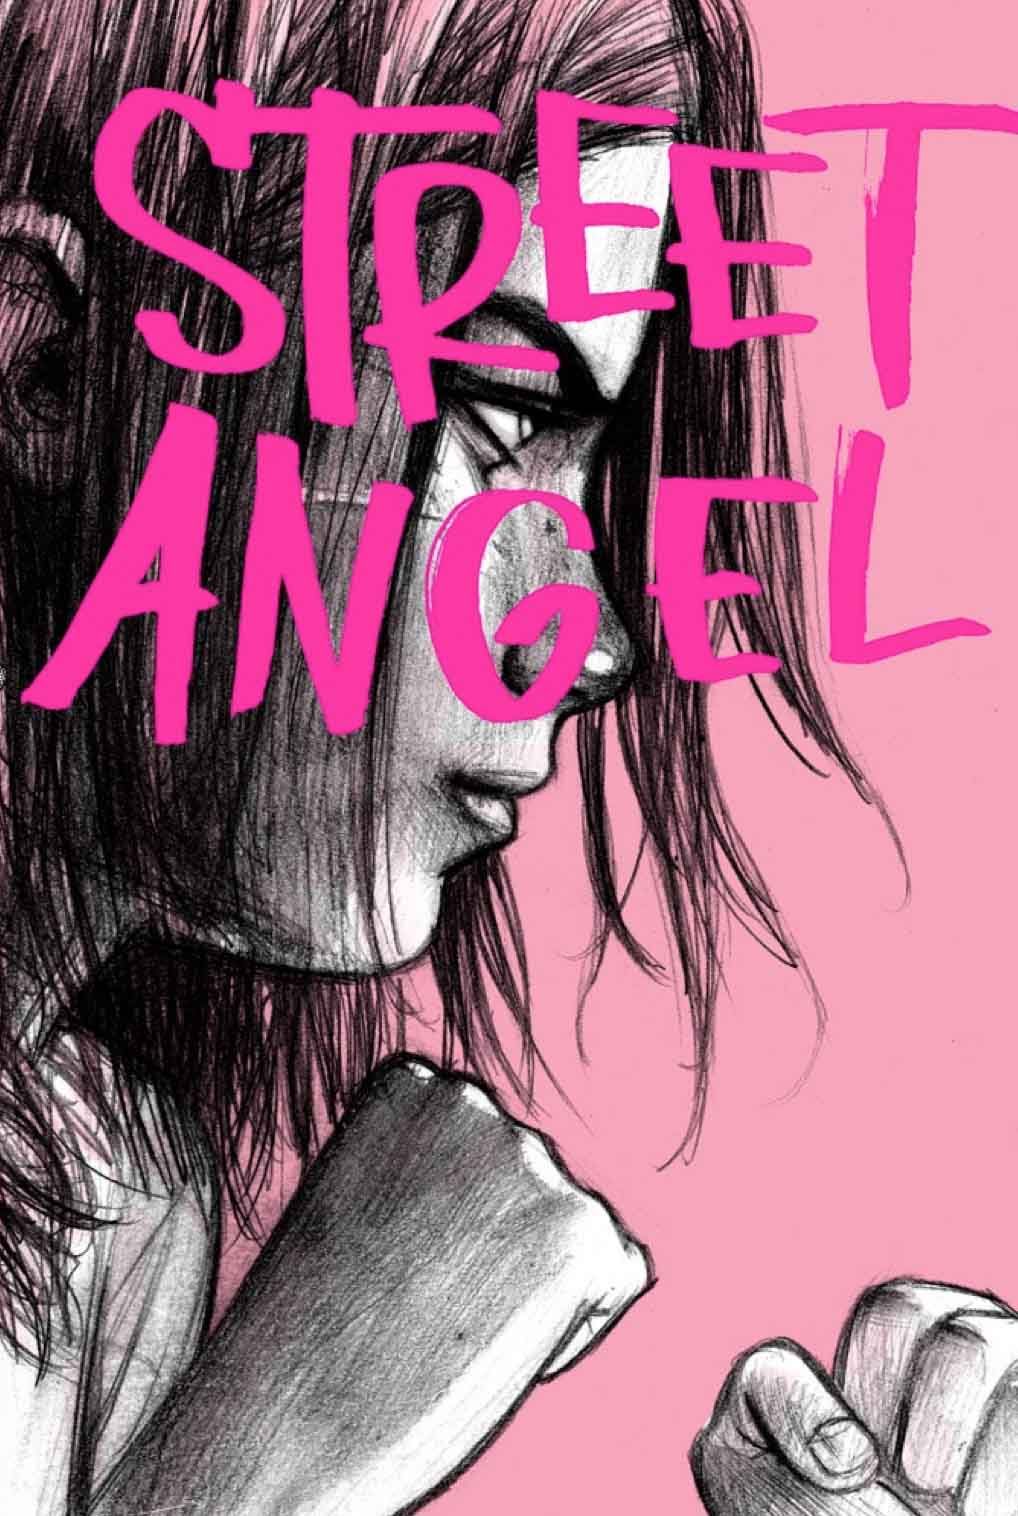 jim-rugg-street-angel-cover